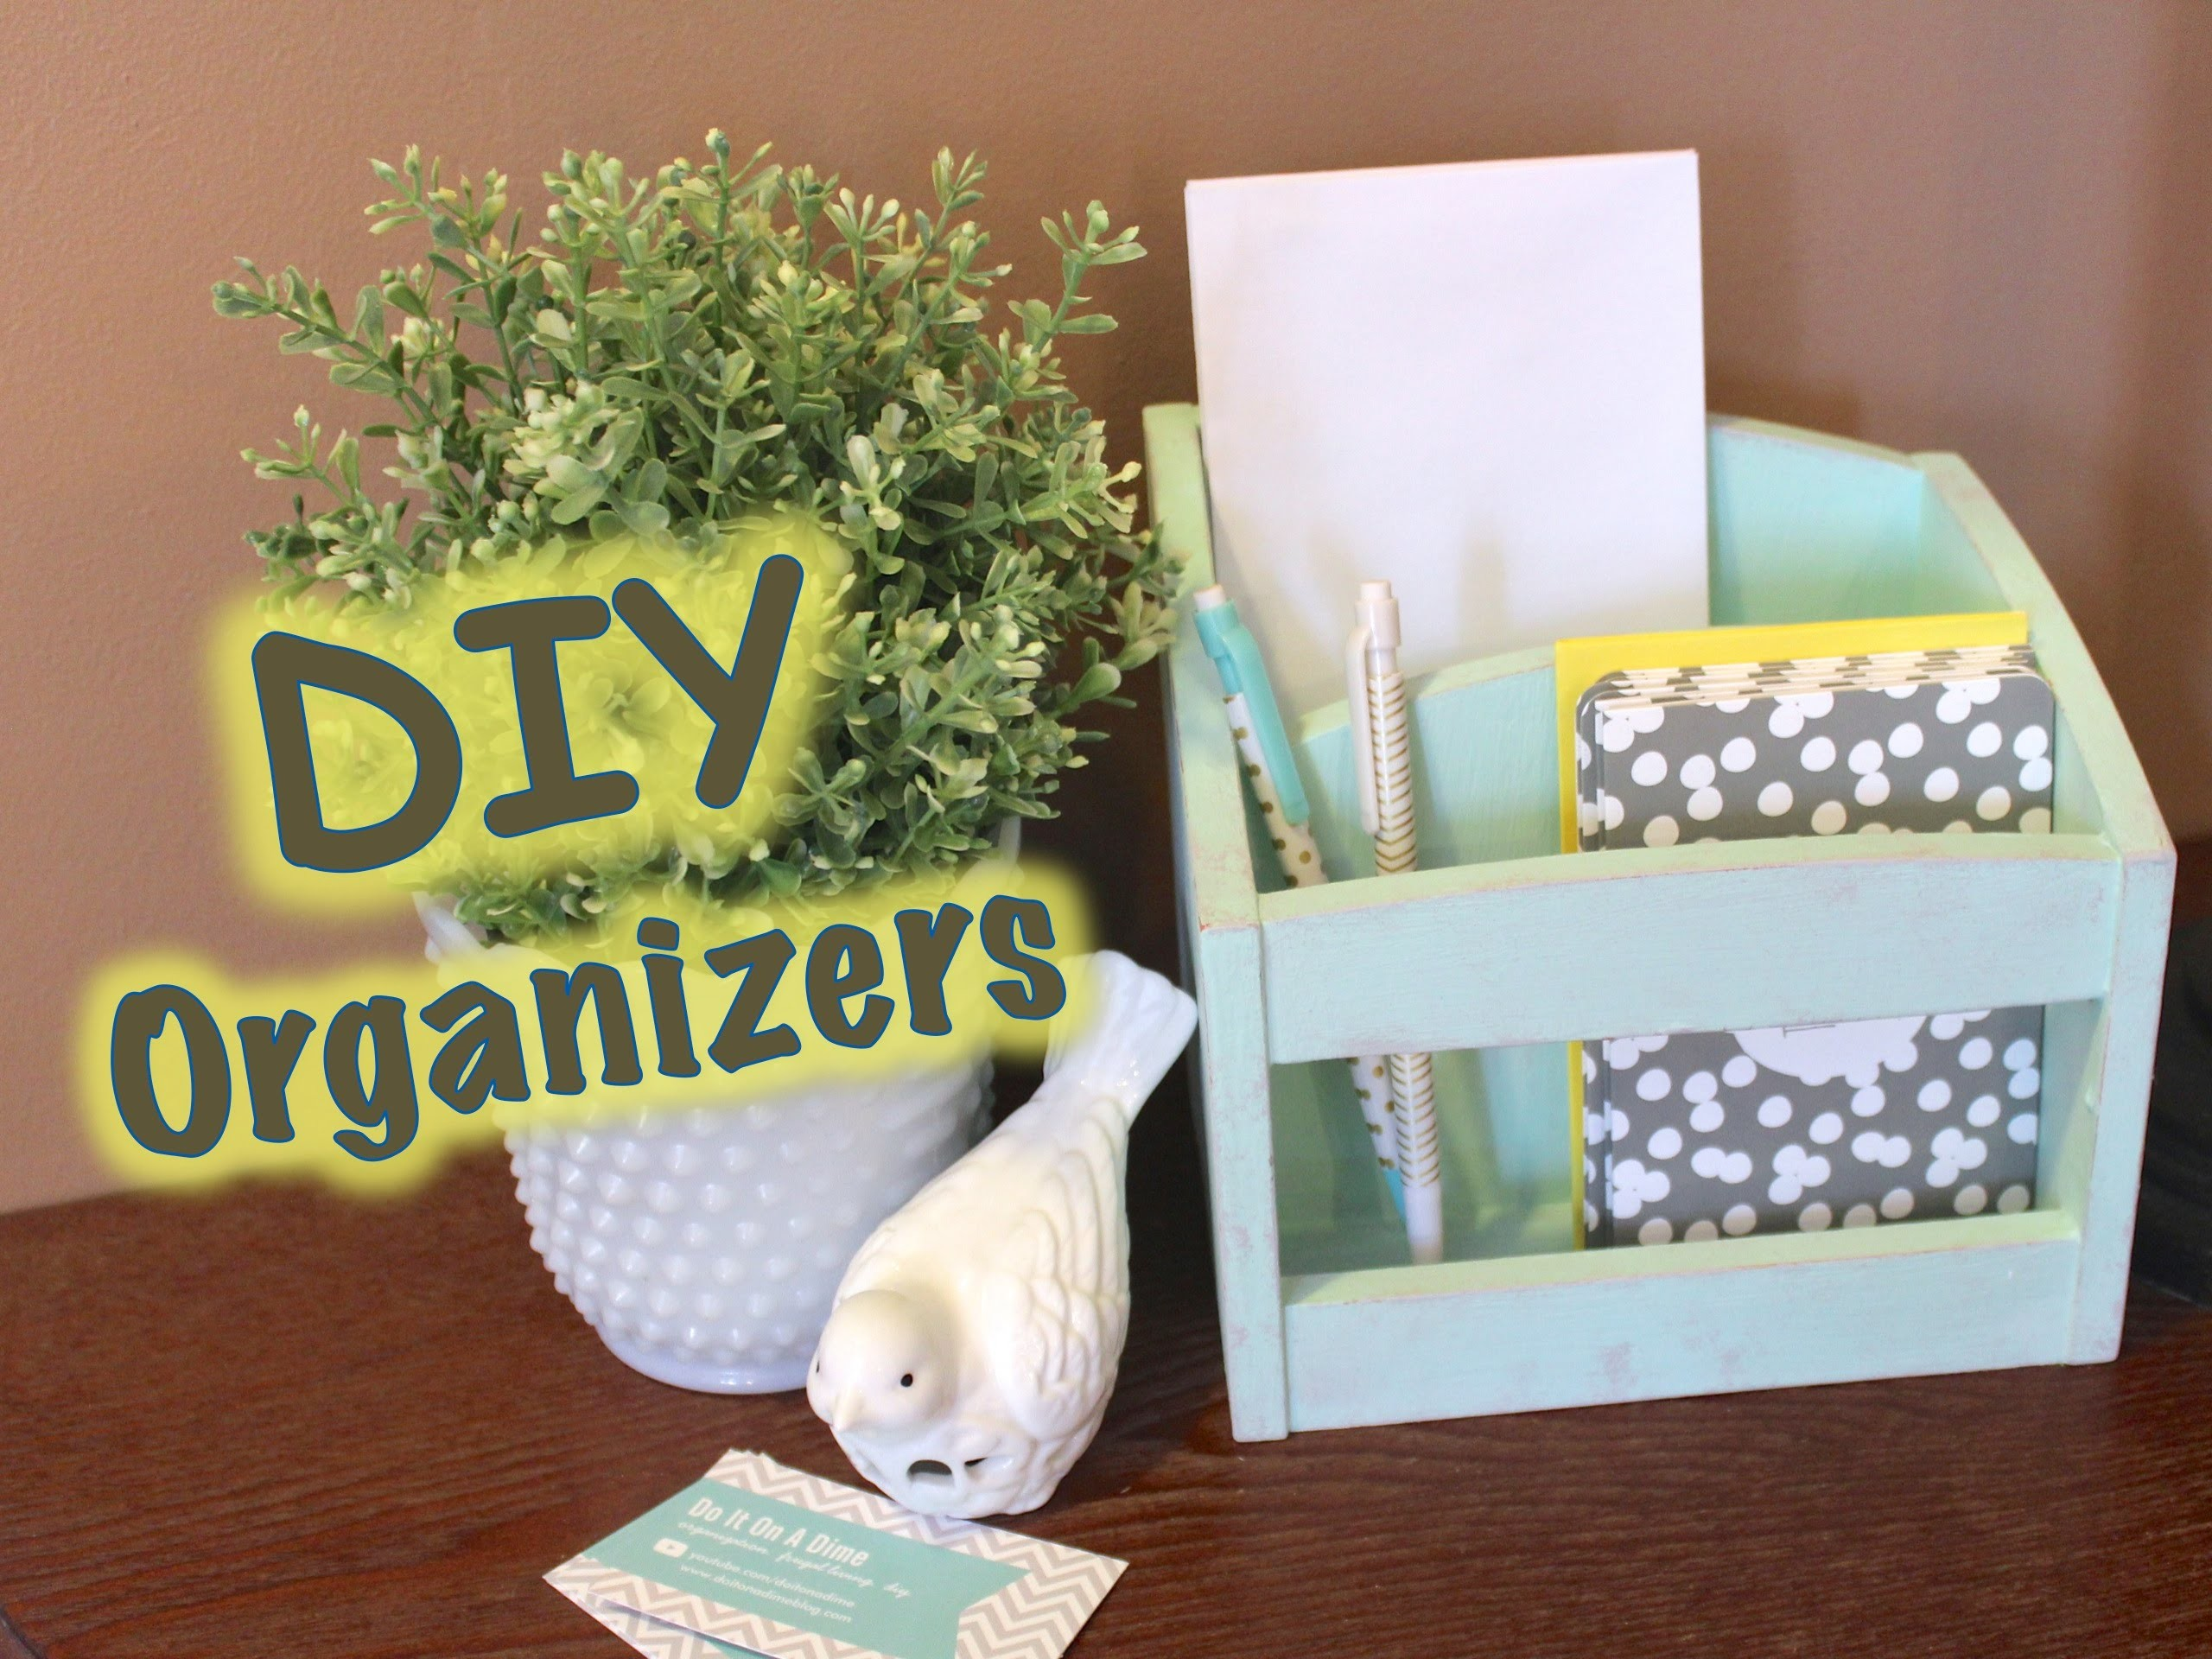 DIY UPCYCLED ORGANIZERS | feat. FolkArt Chalk Paint from Plaid